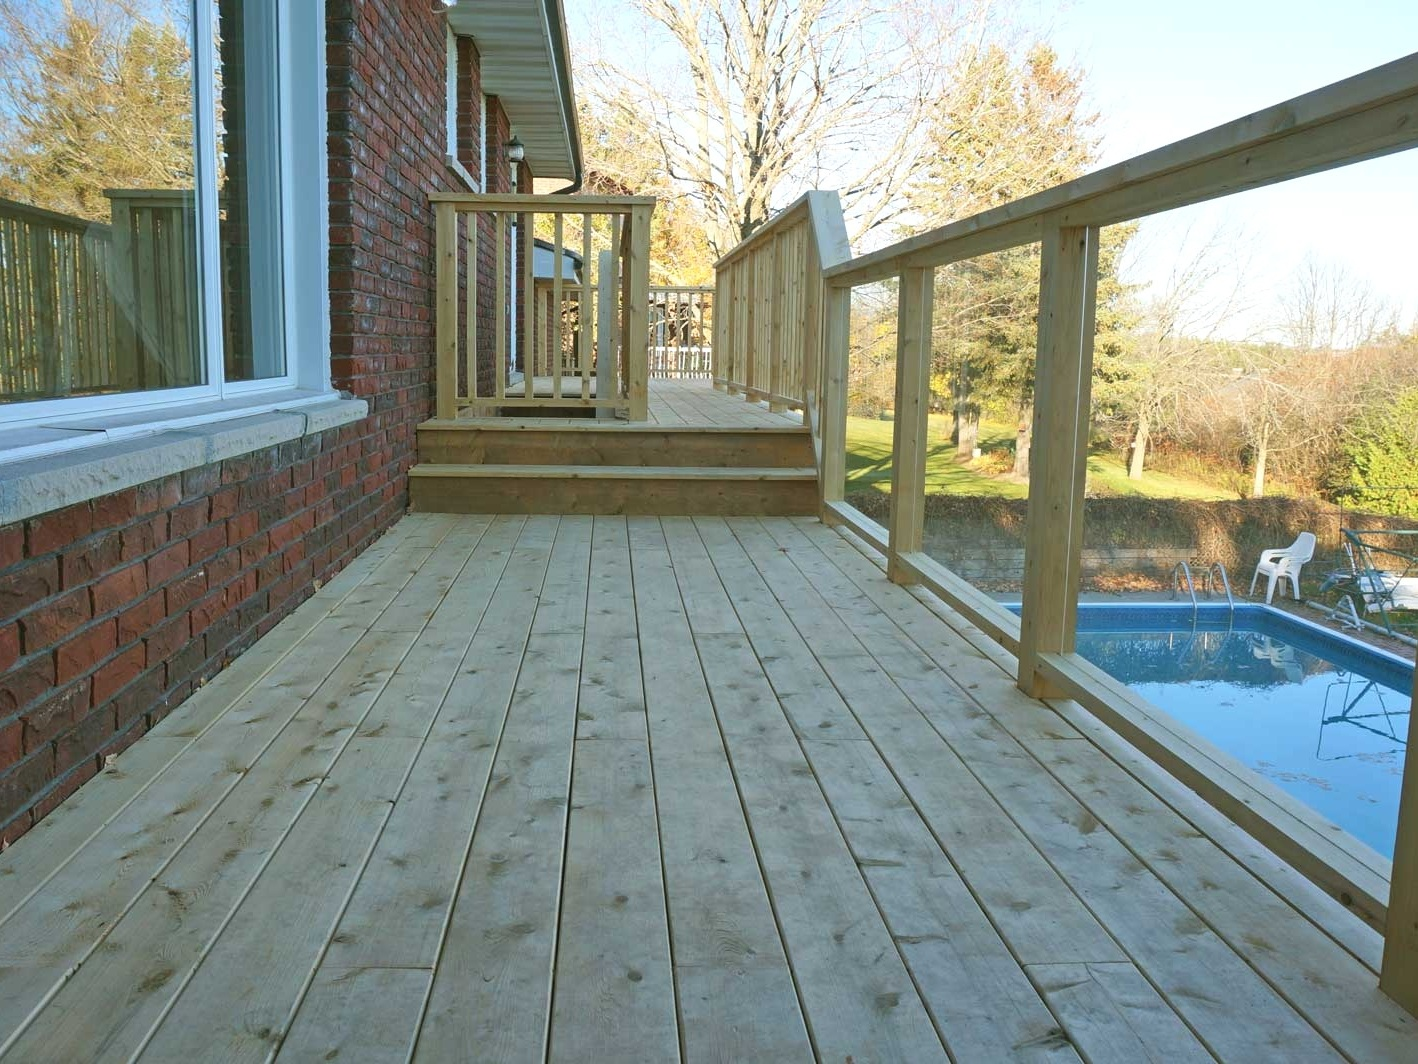 porch-and-deck-4.jpg